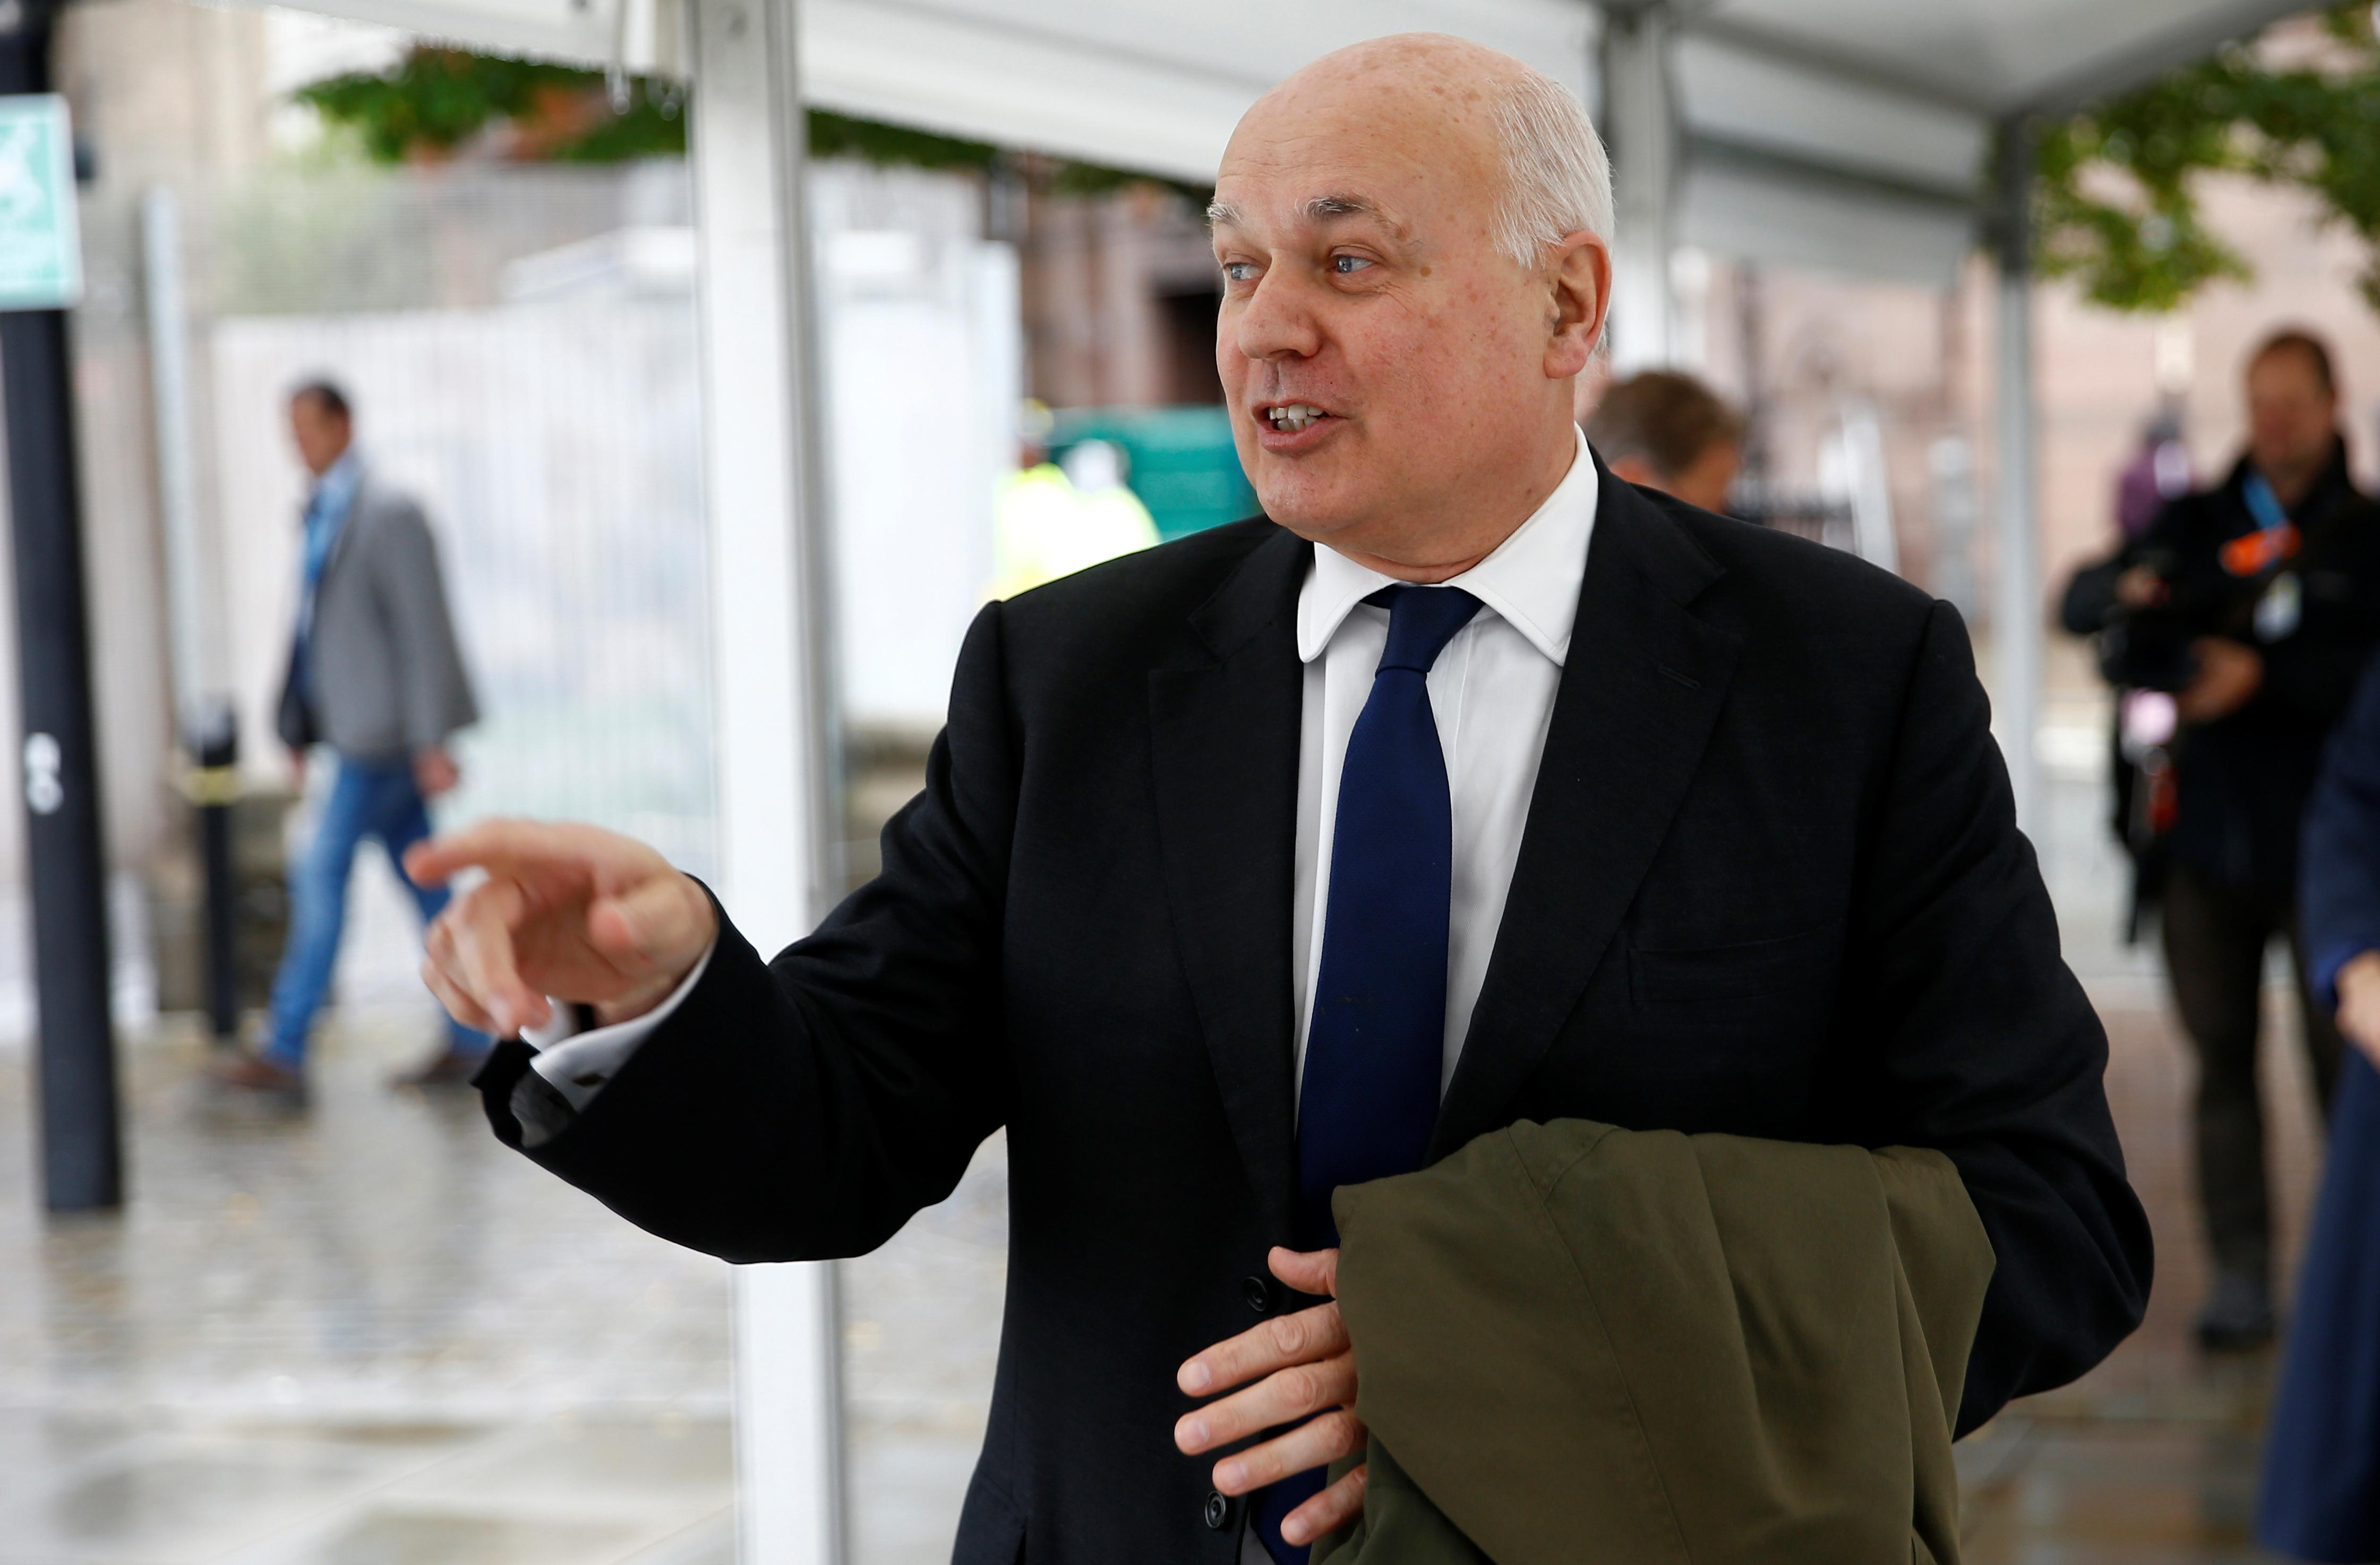 UK Conservative lawmaker Duncan Smith says time to get Brexit done